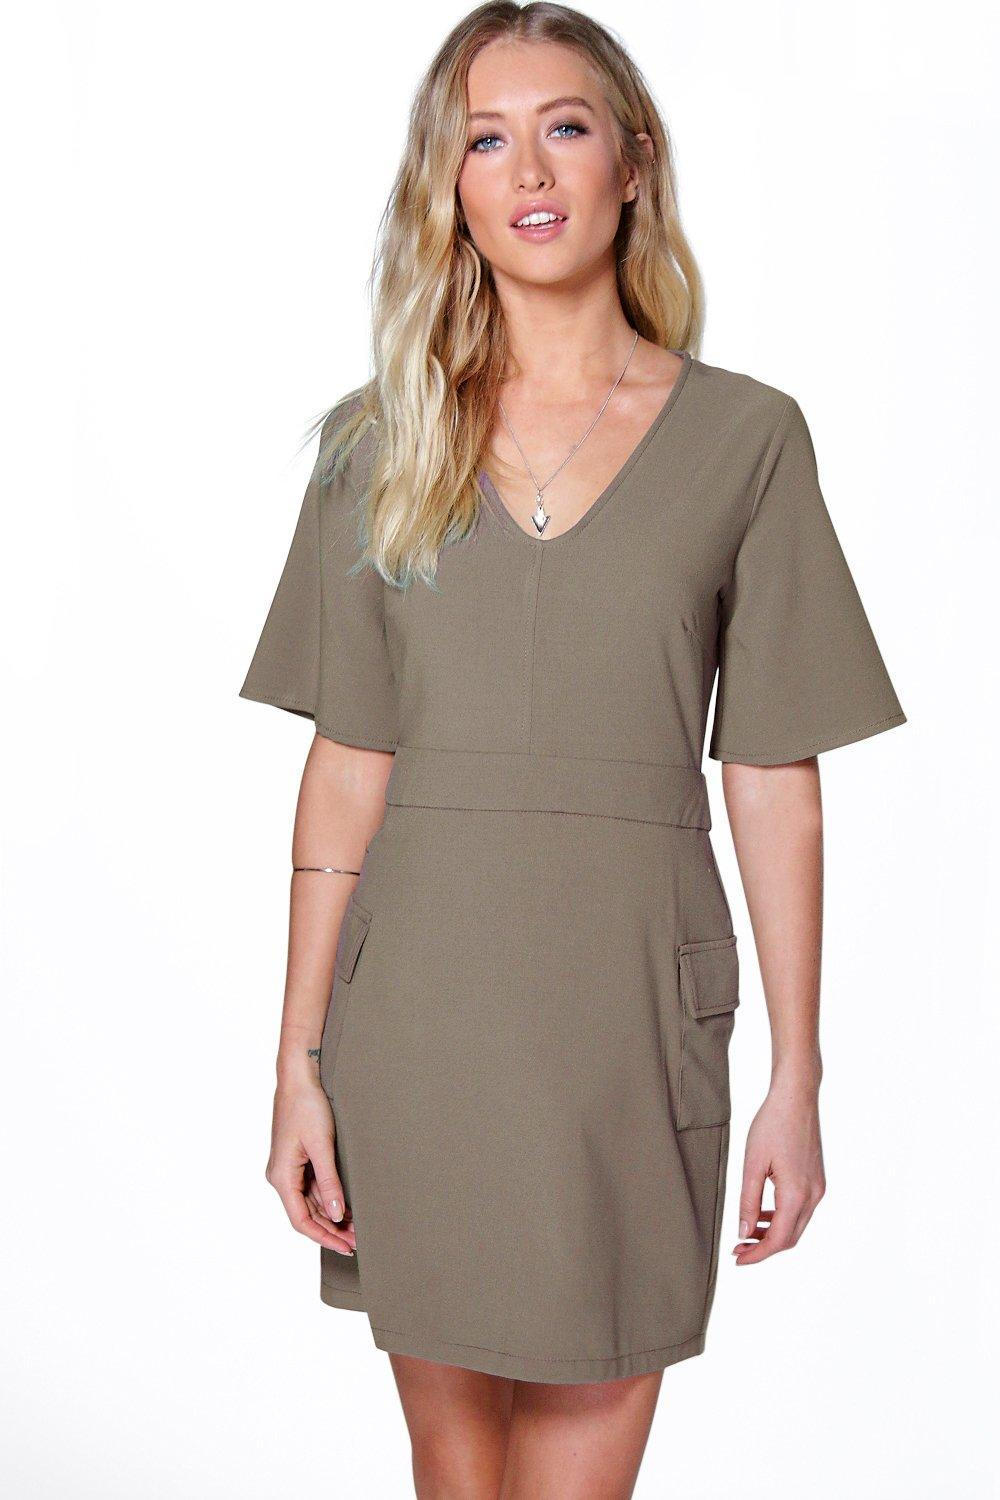 A Line Skater Pocket Dress Black - style: a-line; length: mid thigh; neckline: low v-neck; sleeve style: angel/waterfall; pattern: plain; predominant colour: taupe; occasions: casual, creative work; fit: soft a-line; fibres: cotton - mix; sleeve length: half sleeve; pattern type: fabric; texture group: jersey - stretchy/drapey; season: s/s 2016